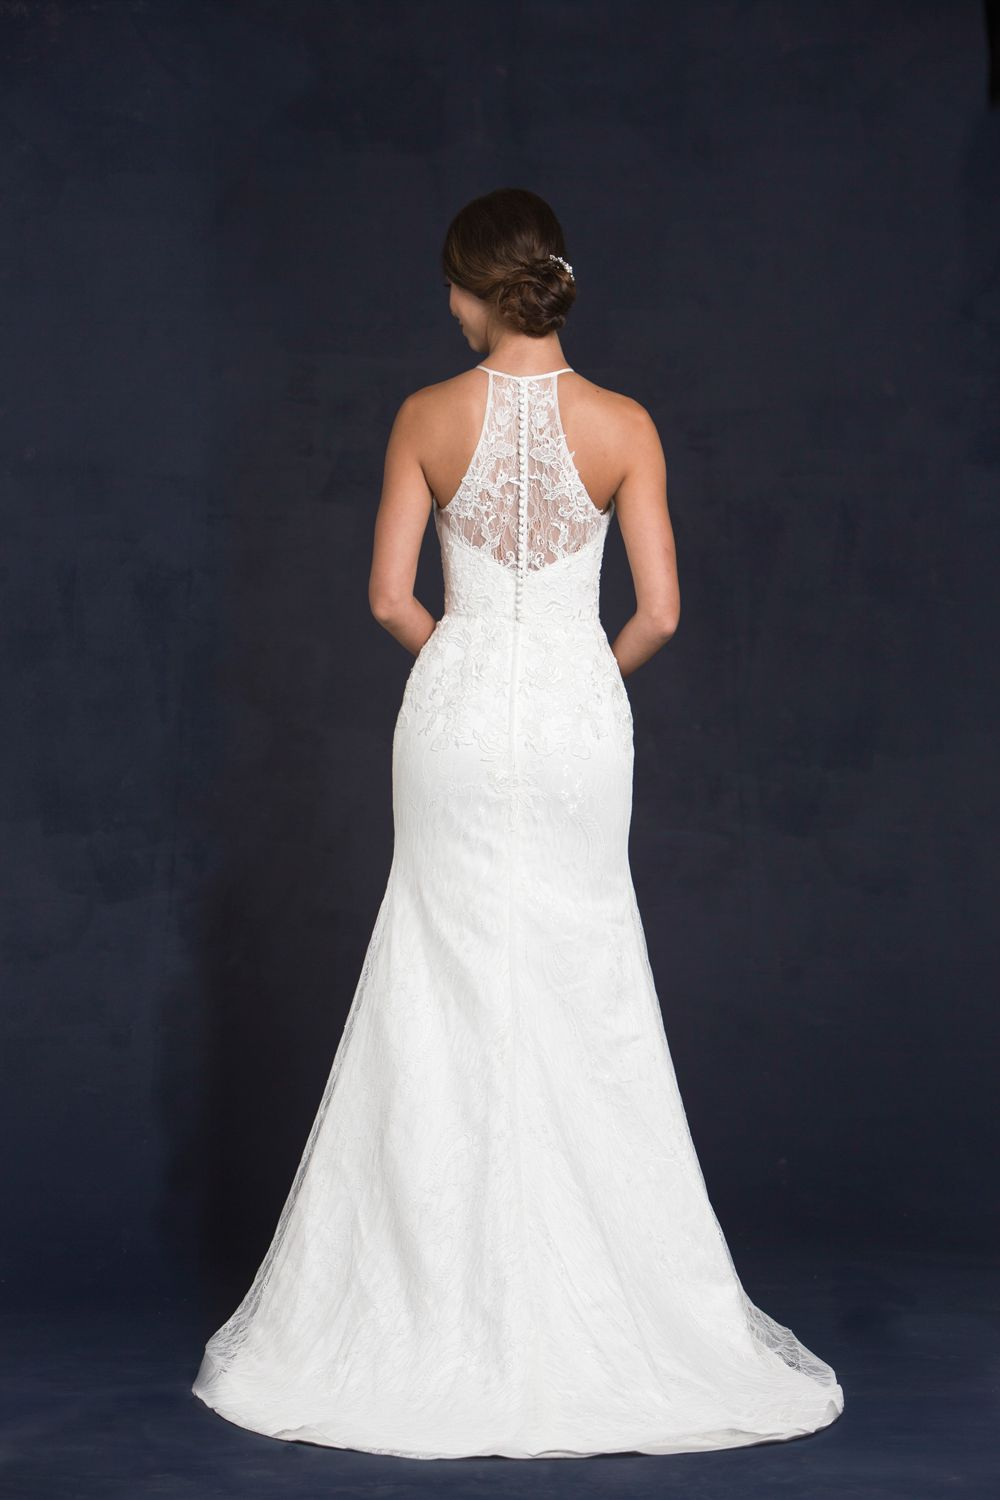 Style garner wedding dresses collection by lis simon